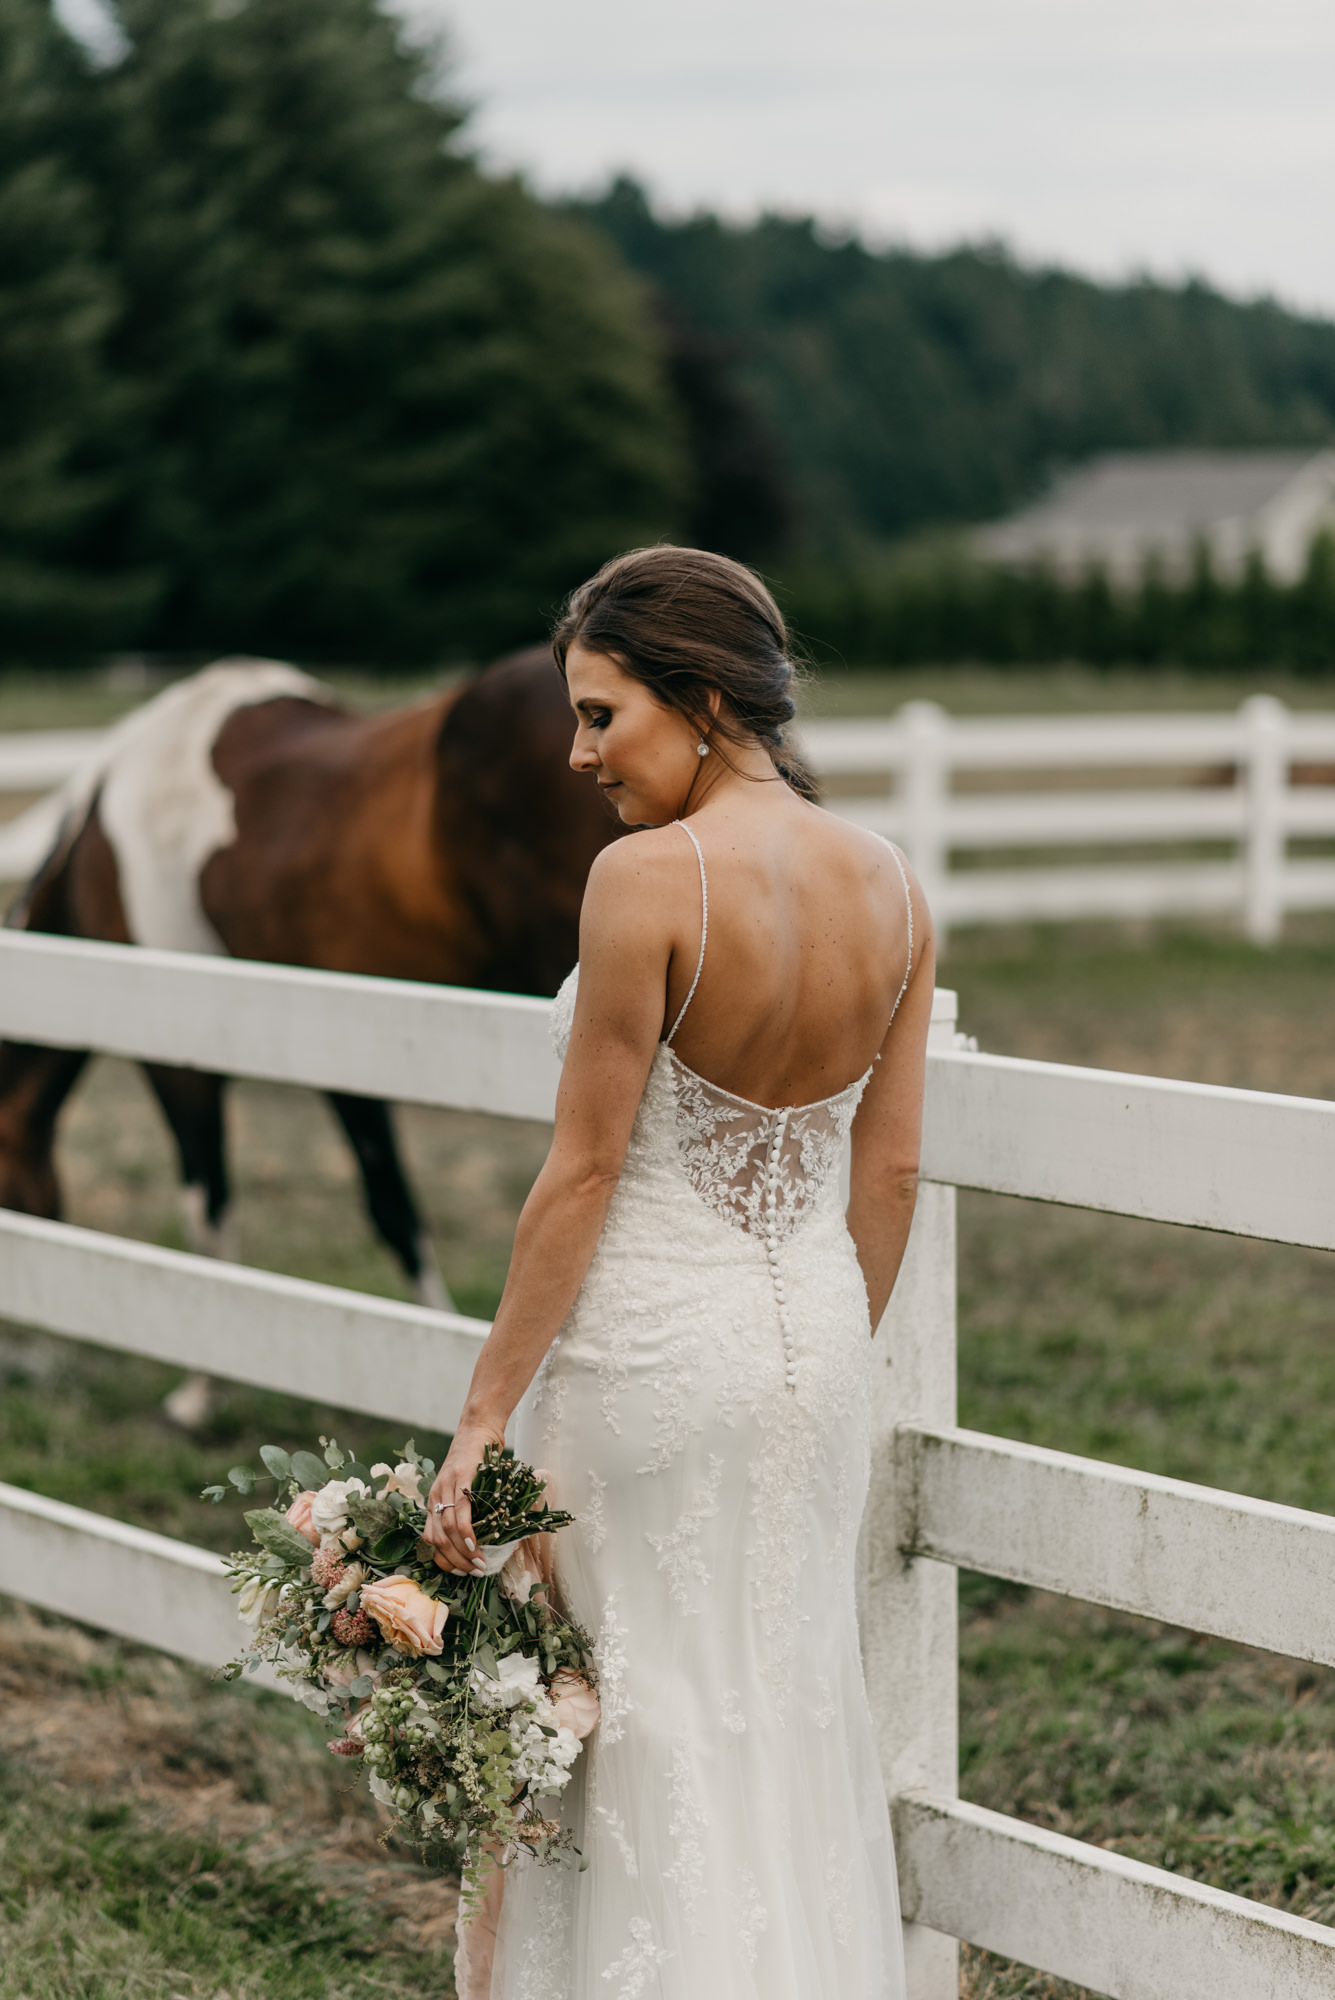 192-barn-kestrel-portland-northwest-horse-sunset-wedding.jpg